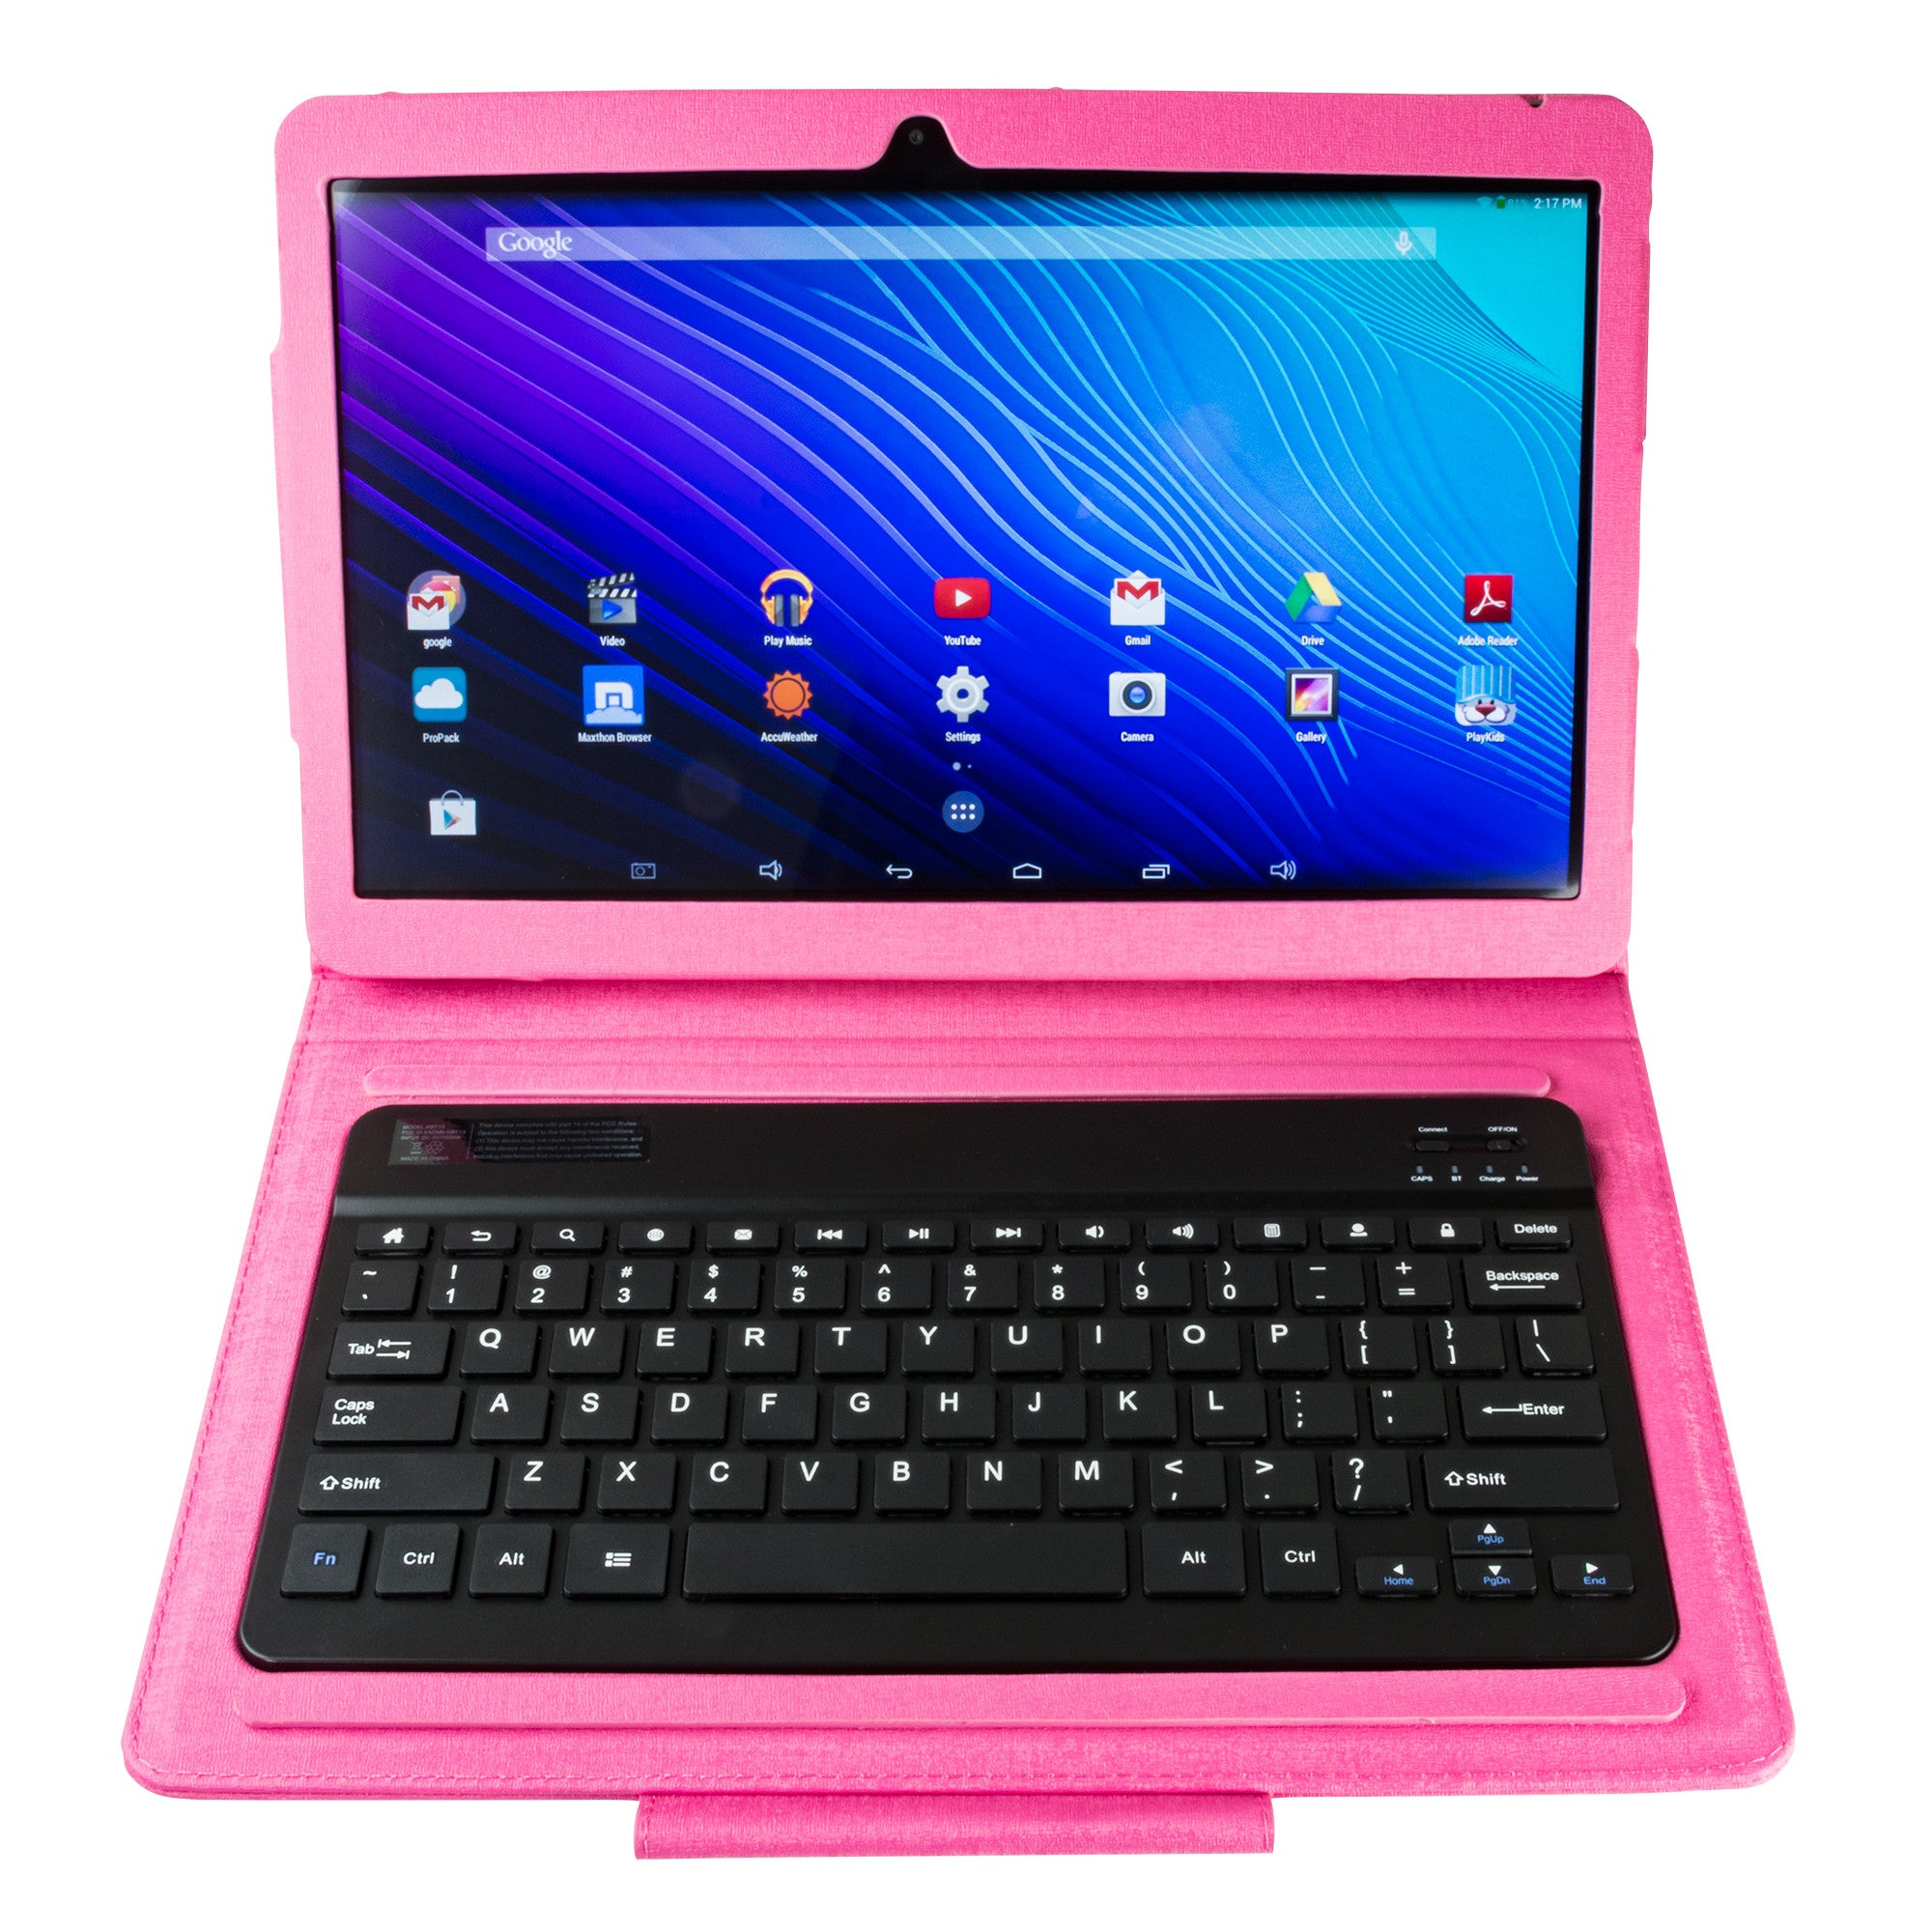 "TM1318 13.3"" Full HD Android Tablet (including Case, Keyboard, Stylus, and Stand)"